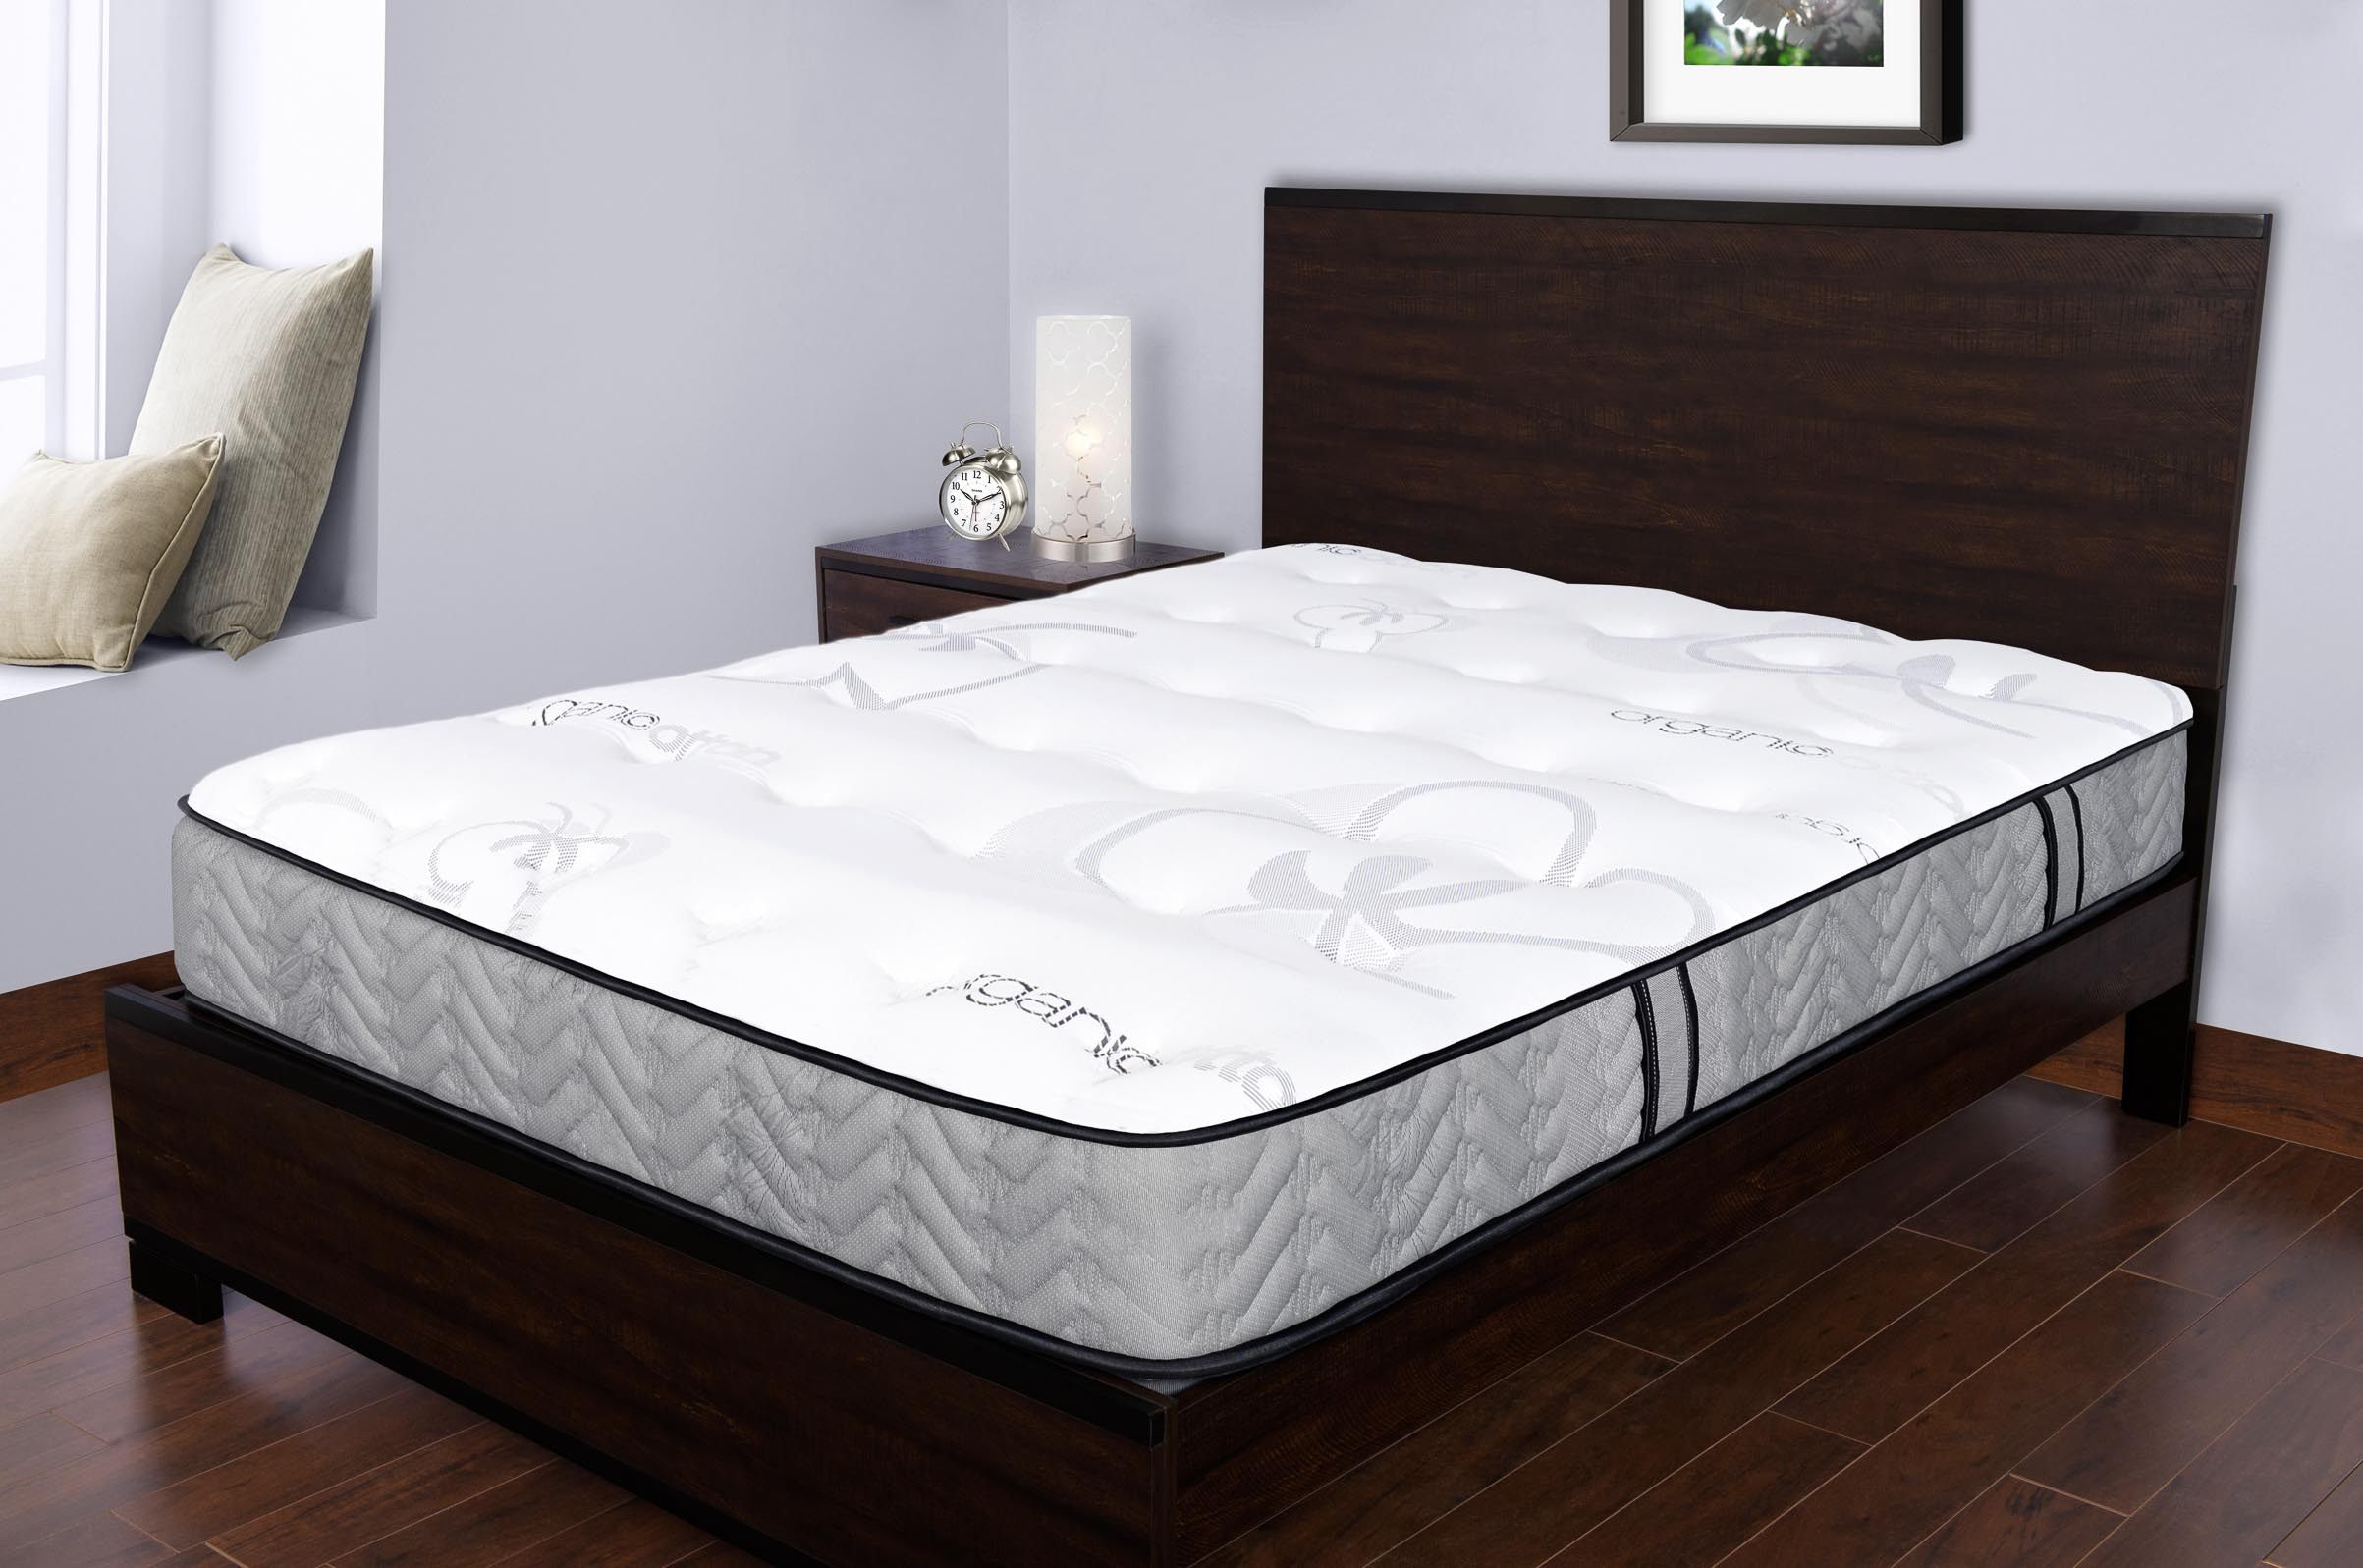 organic medium firm quilted top double sided. Black Bedroom Furniture Sets. Home Design Ideas